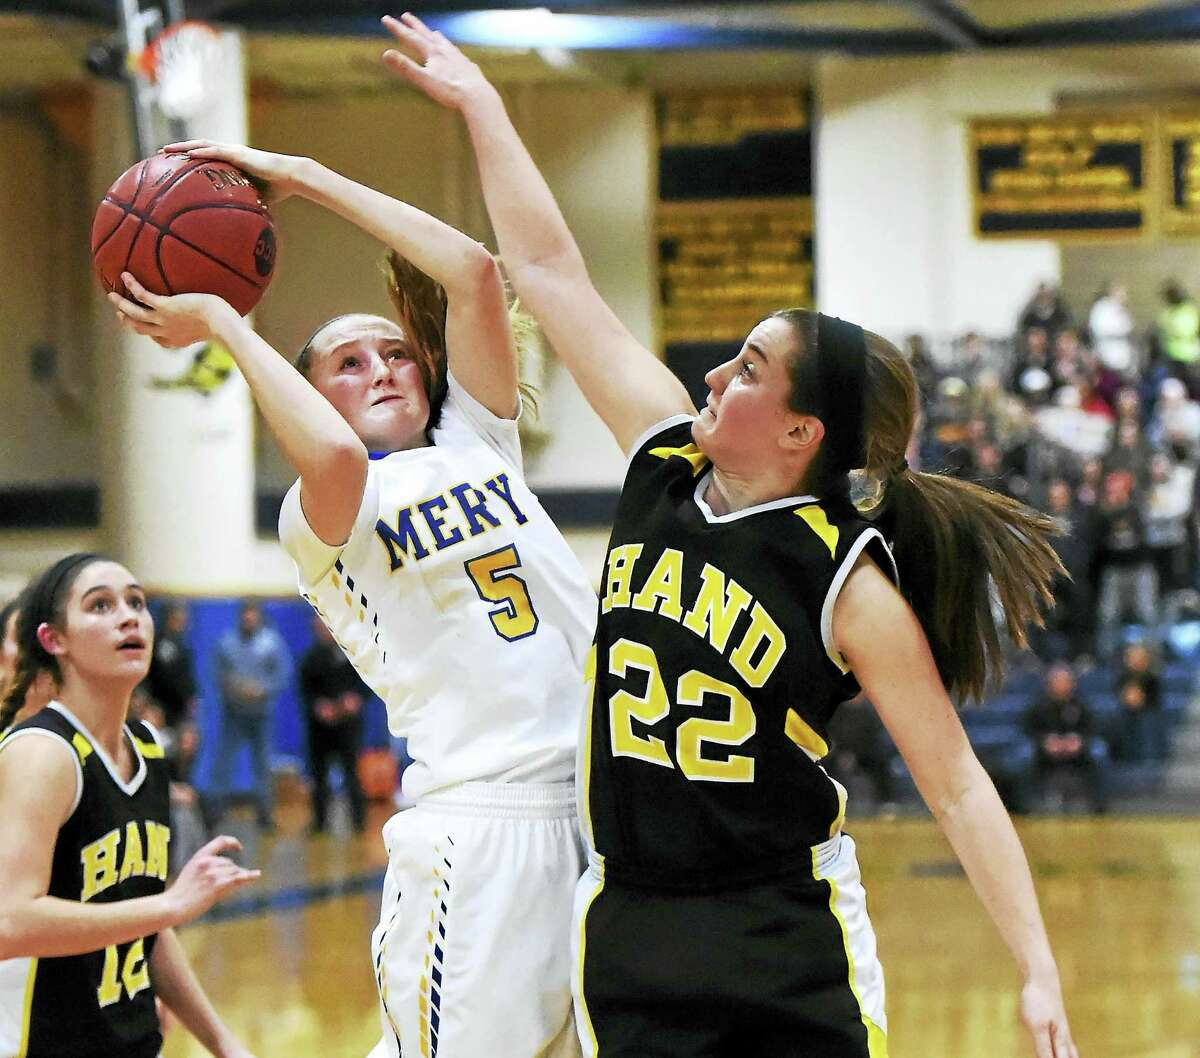 Peter Hvizdak — GameTime CT Mercy's Isabella Santoro has her shot blocked by Paula Materin of Hand during the fourth guarter of the SCC girls basketball championship Wednesday at East Haven High School.